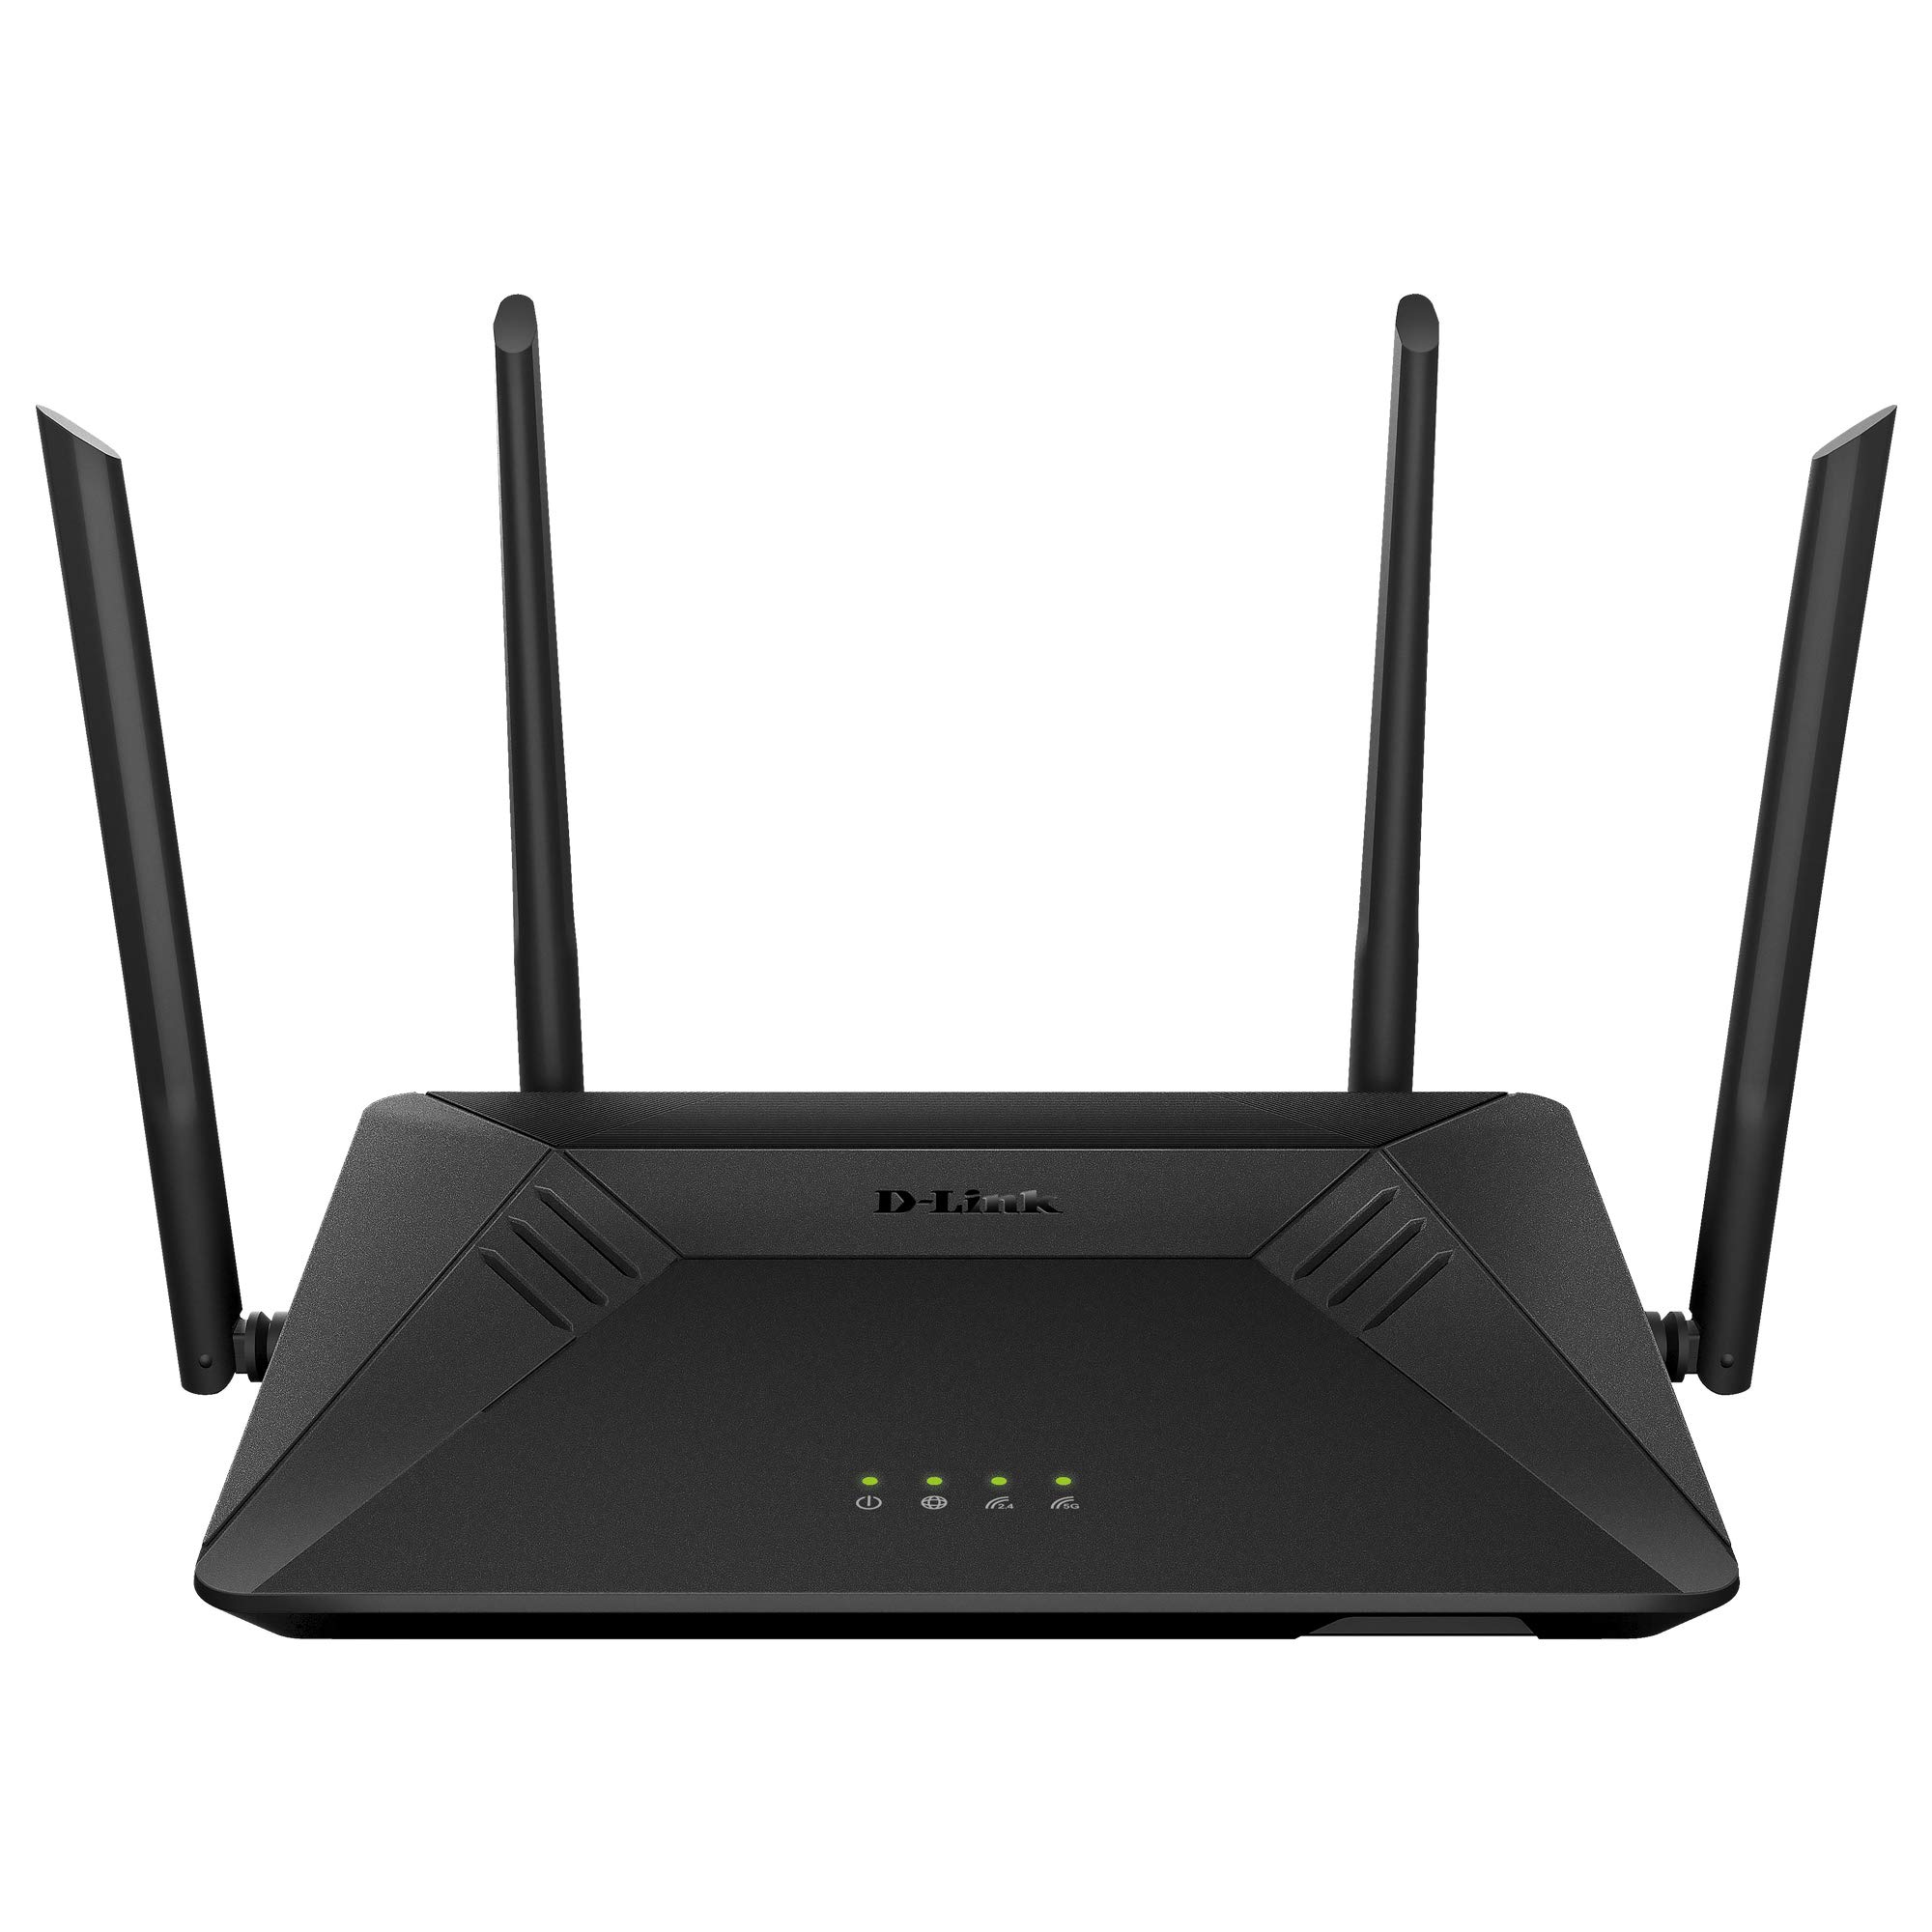 D-Link AC1750 Wifi Router - Smart Dual Band - MU-Mimo - Powerful Dual Core Processor - Blazing Fast Wi-Fi for Gaming and 4K Streaming (DIR-867-US) by D-Link